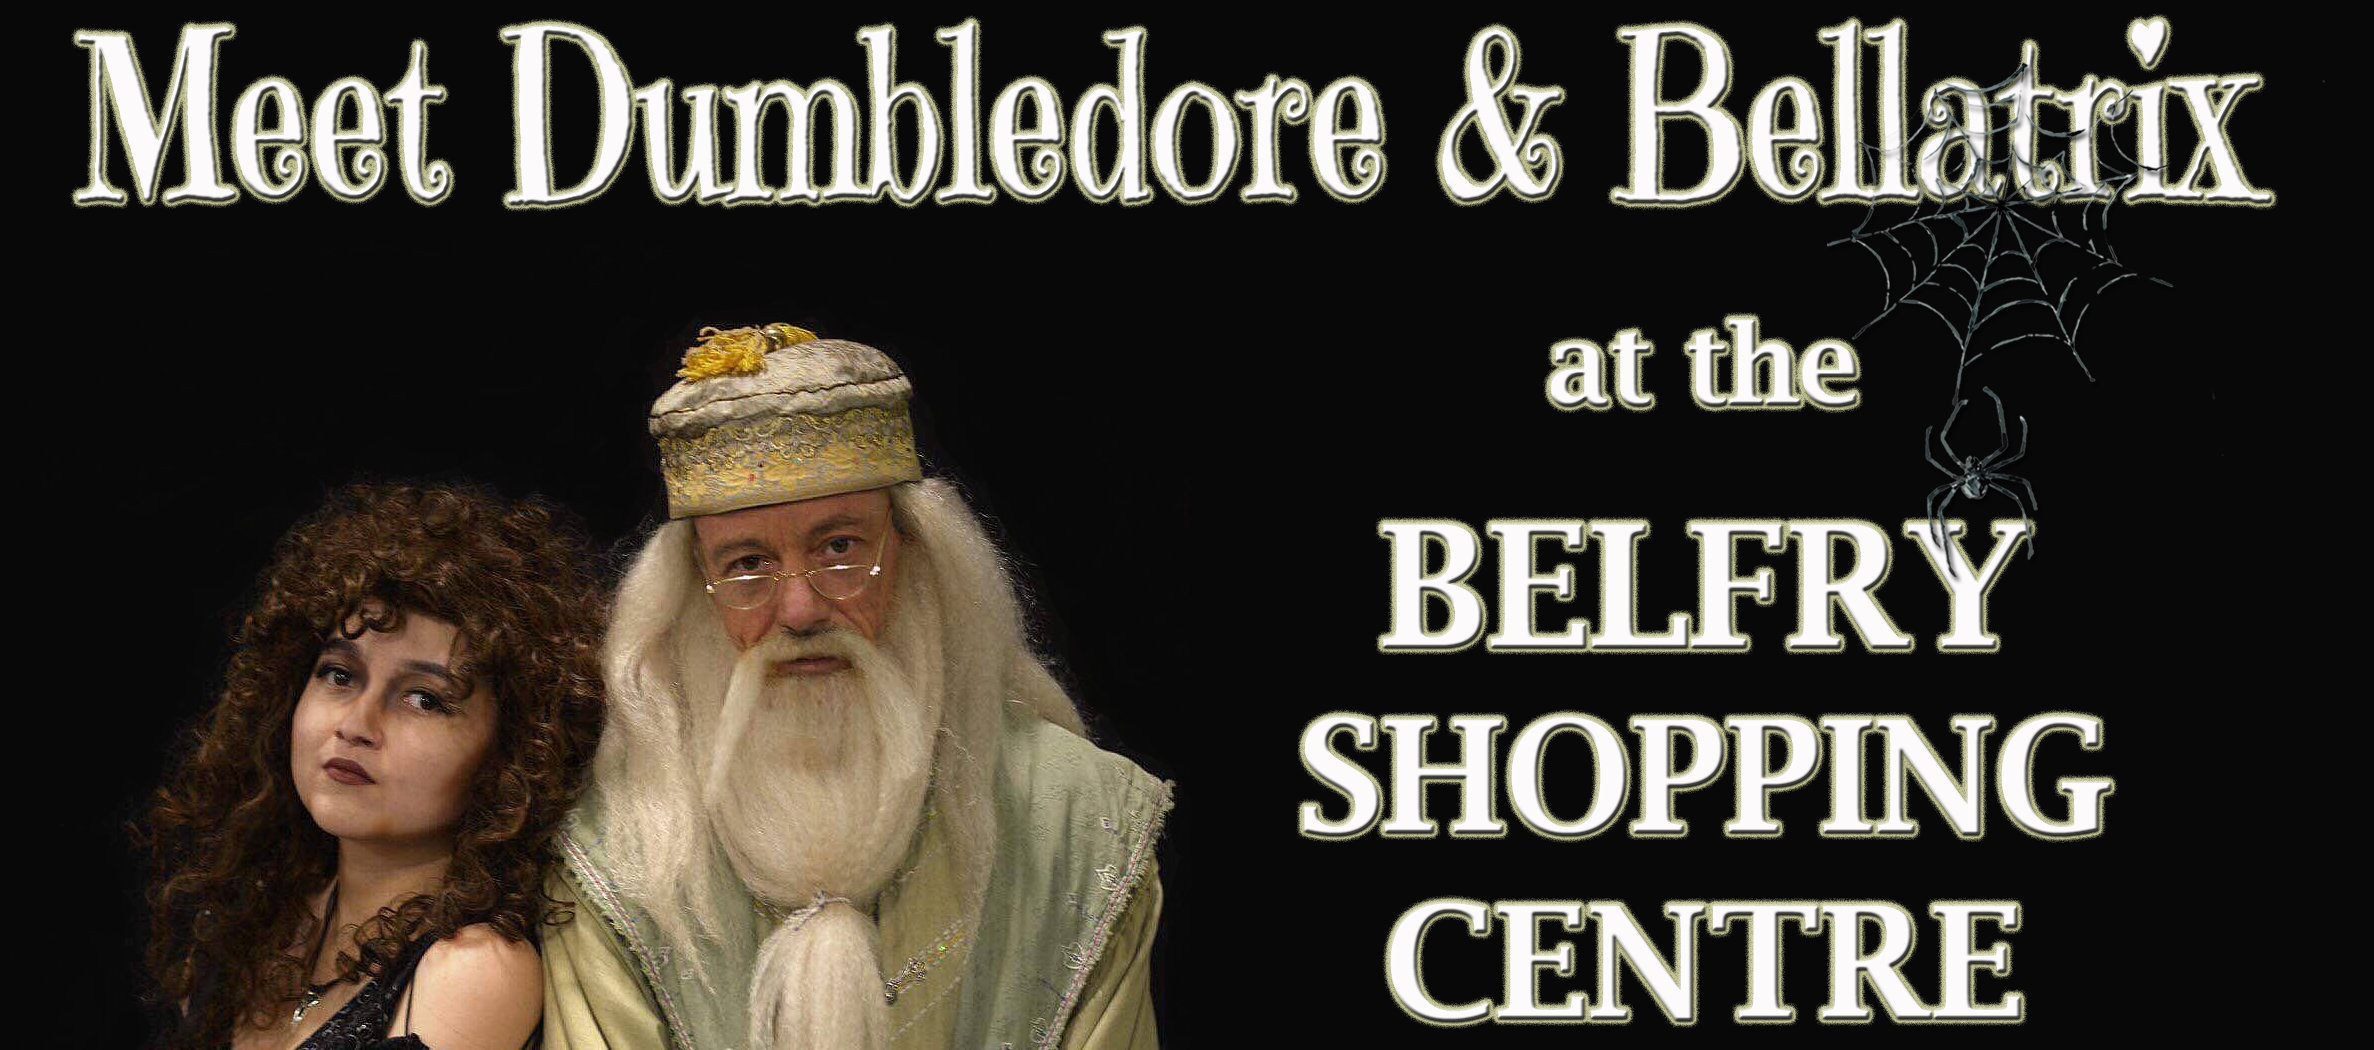 Aspergers, autism, disability, diversity, parenting, special needs, autism awareness, autism acceptance, autism parents, events, autism-friendly, redhill, surrey, belfry shopping centre, Autism All Stars, Dumbledore, Bellatrix, Harry Potter, Halloween, characters, cosplay